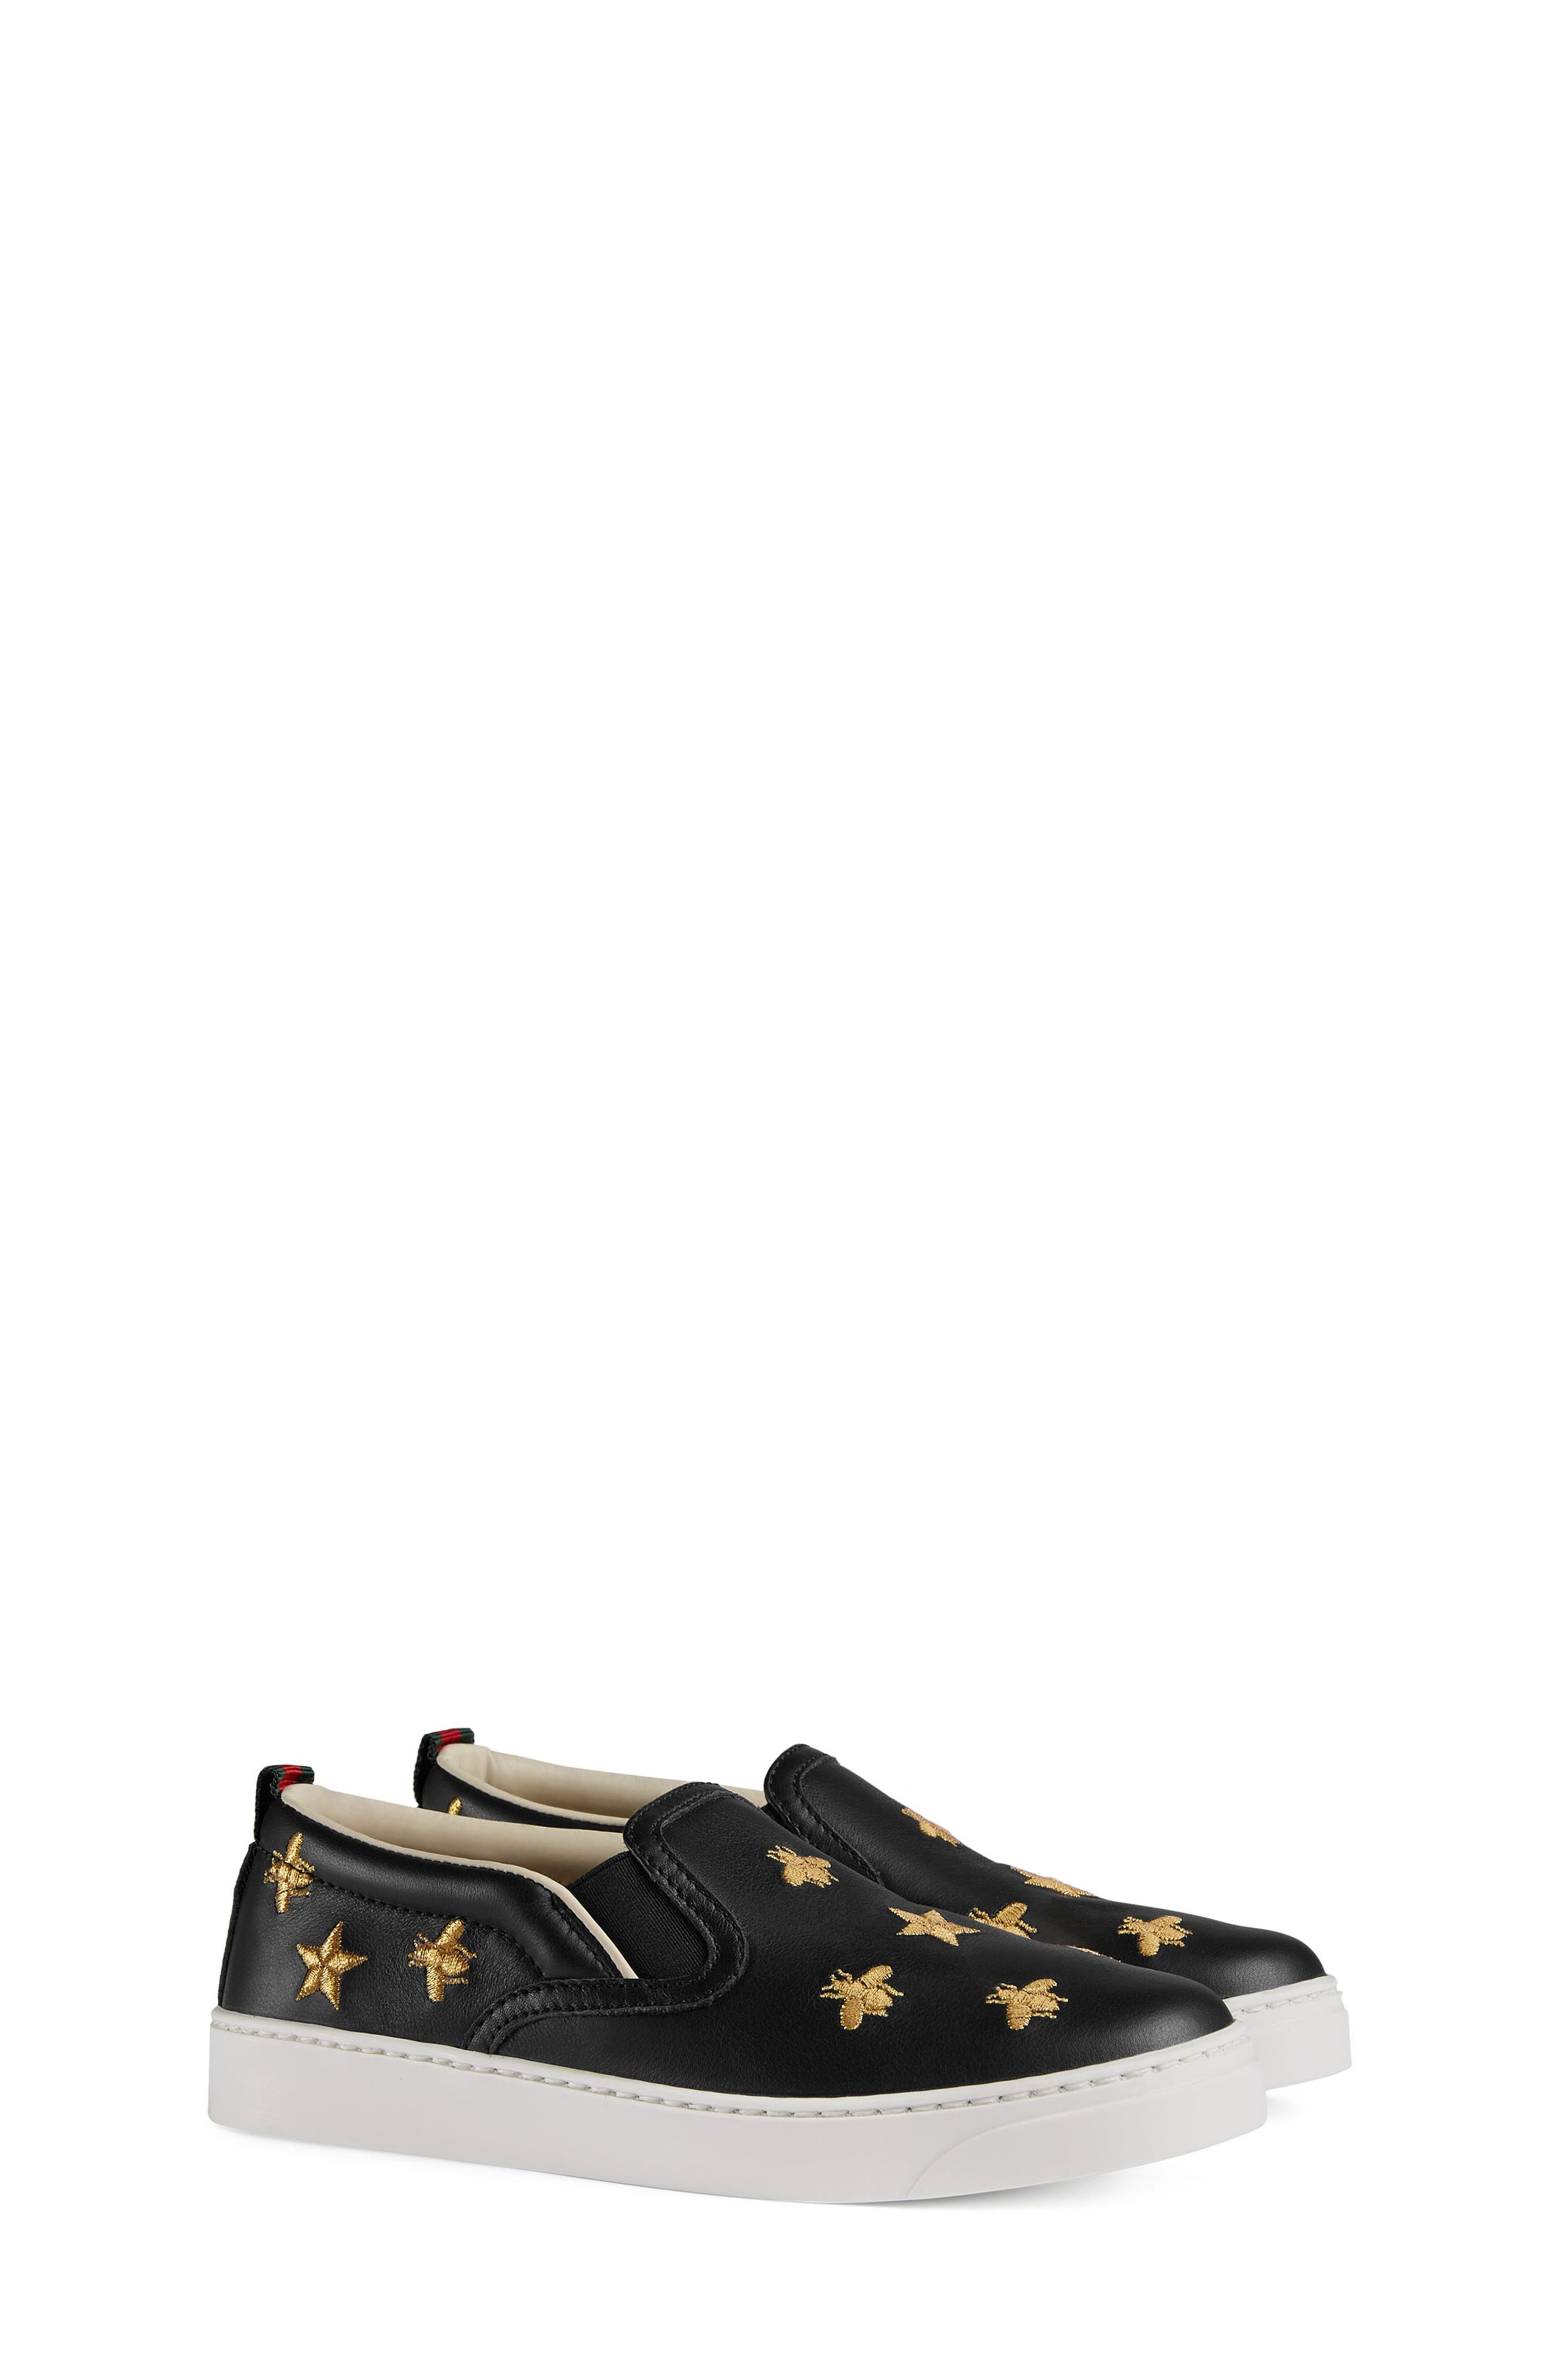 Dublin Bees and Stars Slip-On Sneaker,                             Main thumbnail 1, color,                             BLACK/GOLD STARS